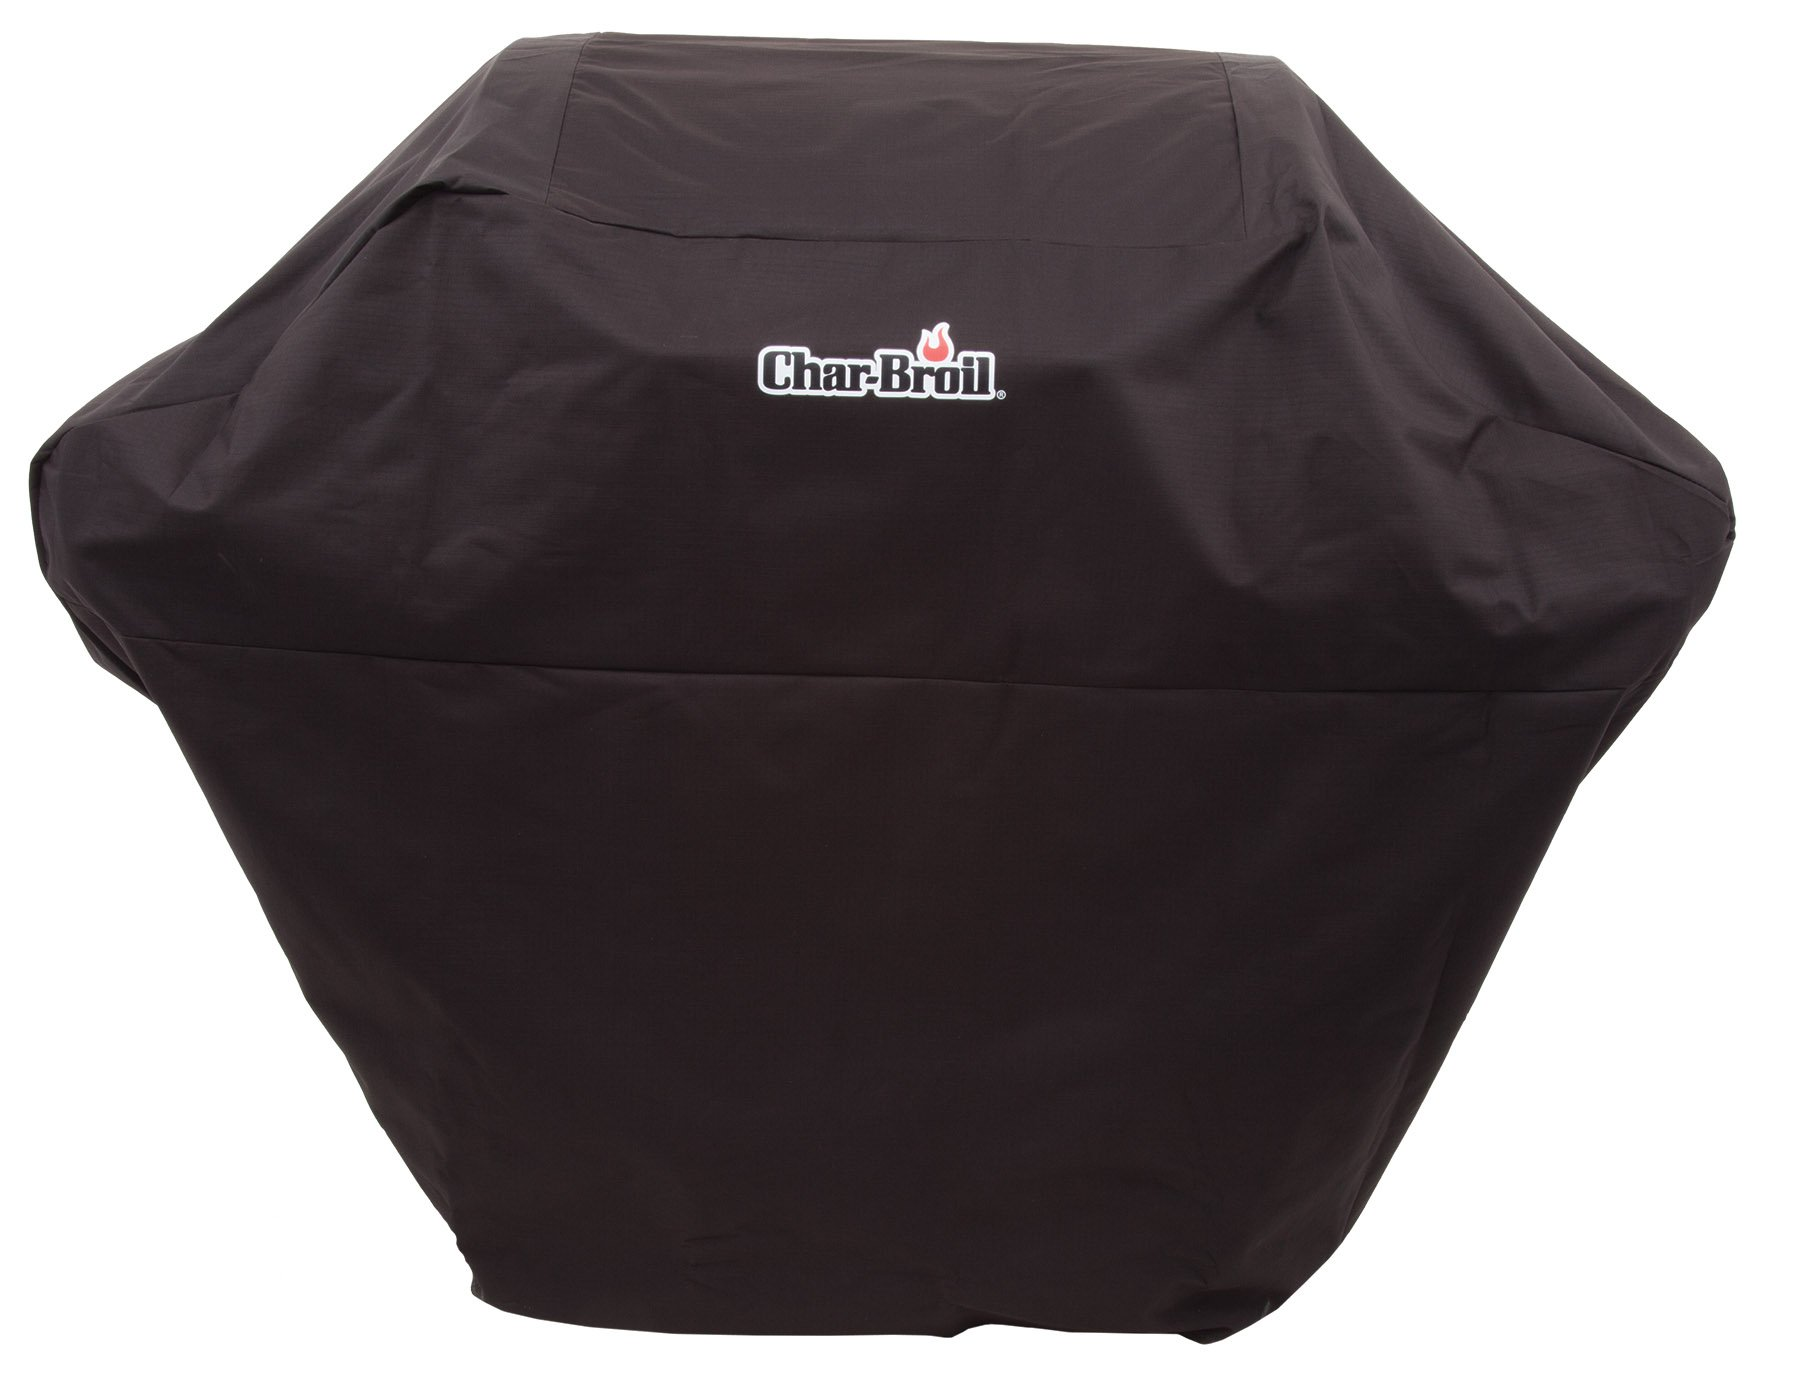 Char-Broil 3-4 Burner Rip-Stop Cover by Char-Broil (Image #1)